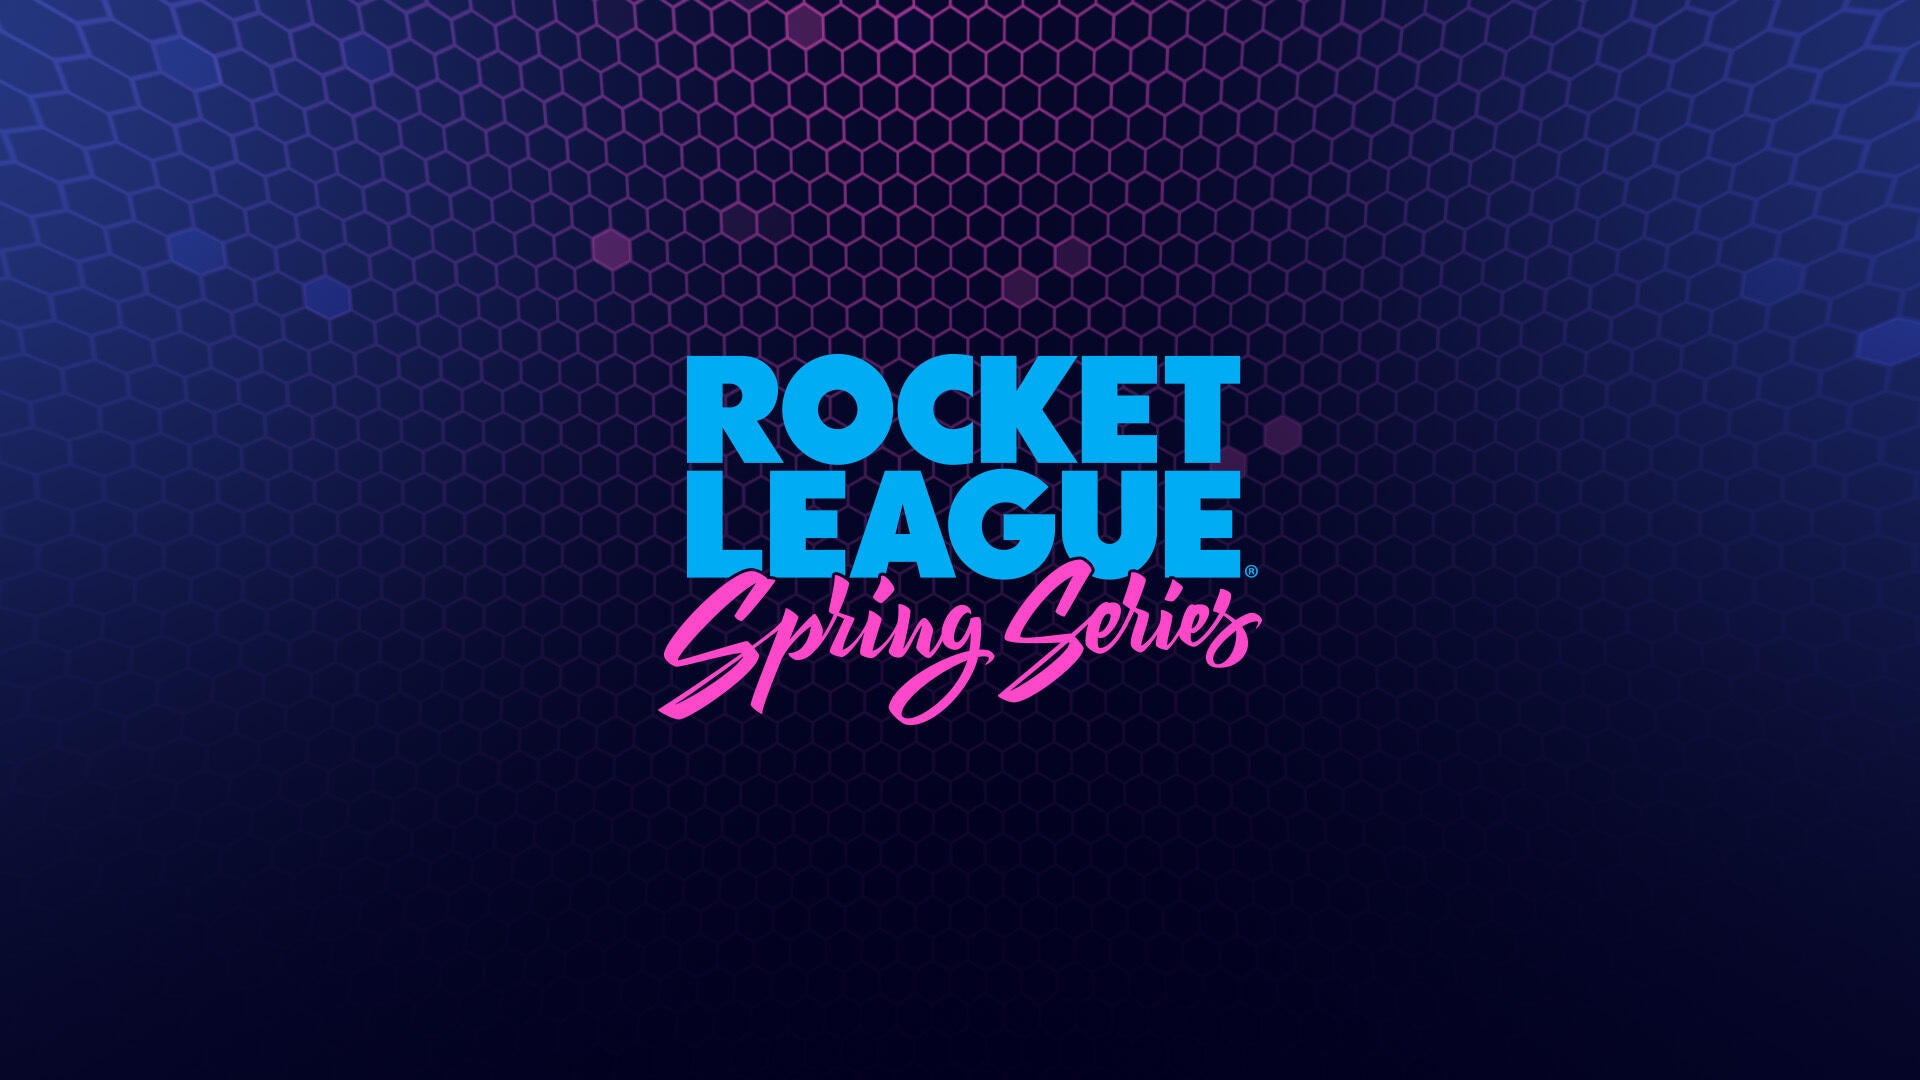 Introducing the Rocket League Spring Series! Image